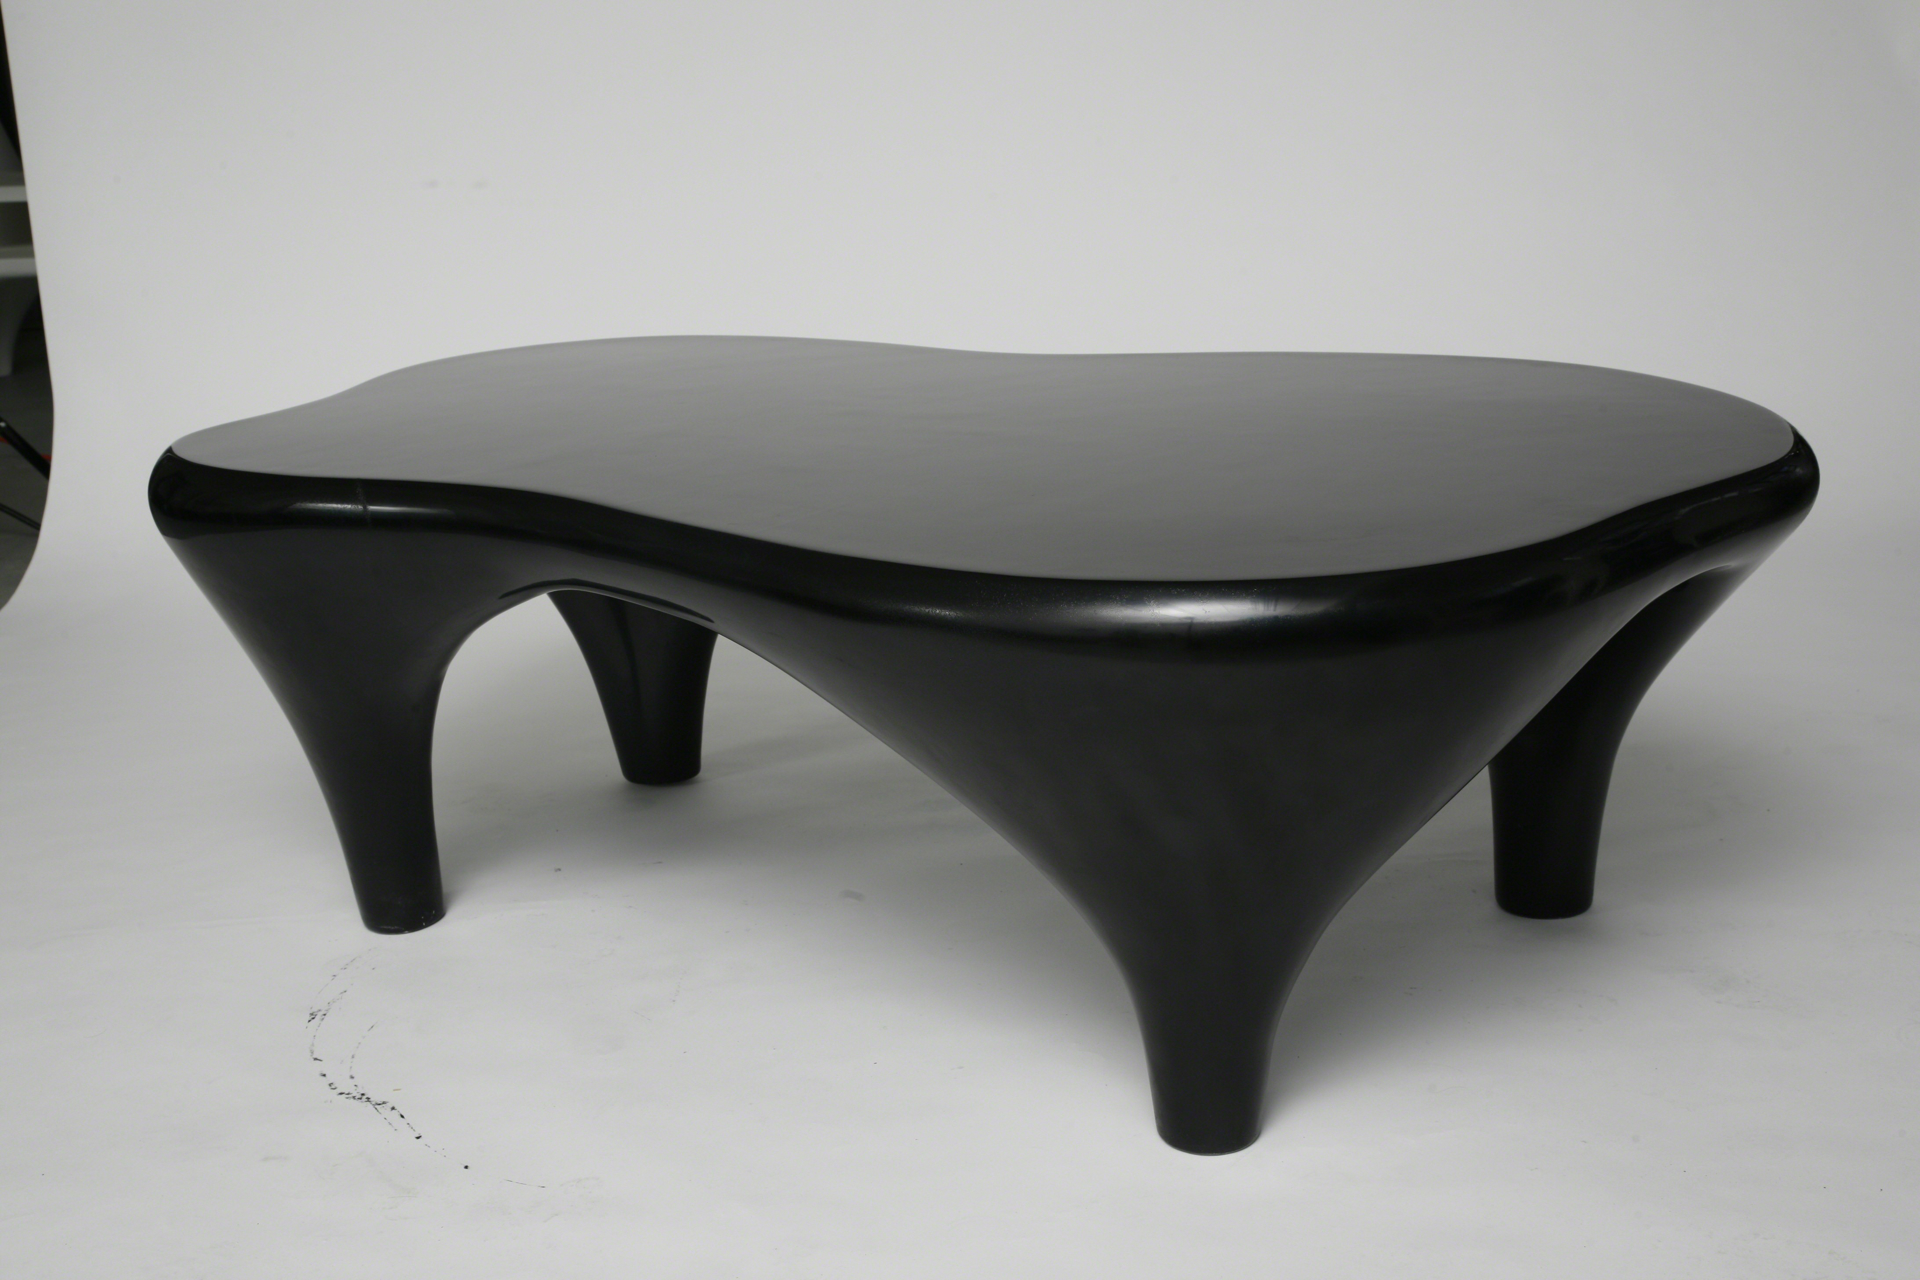 """Toro"" Coffee table in black by Jacques Jarrige"